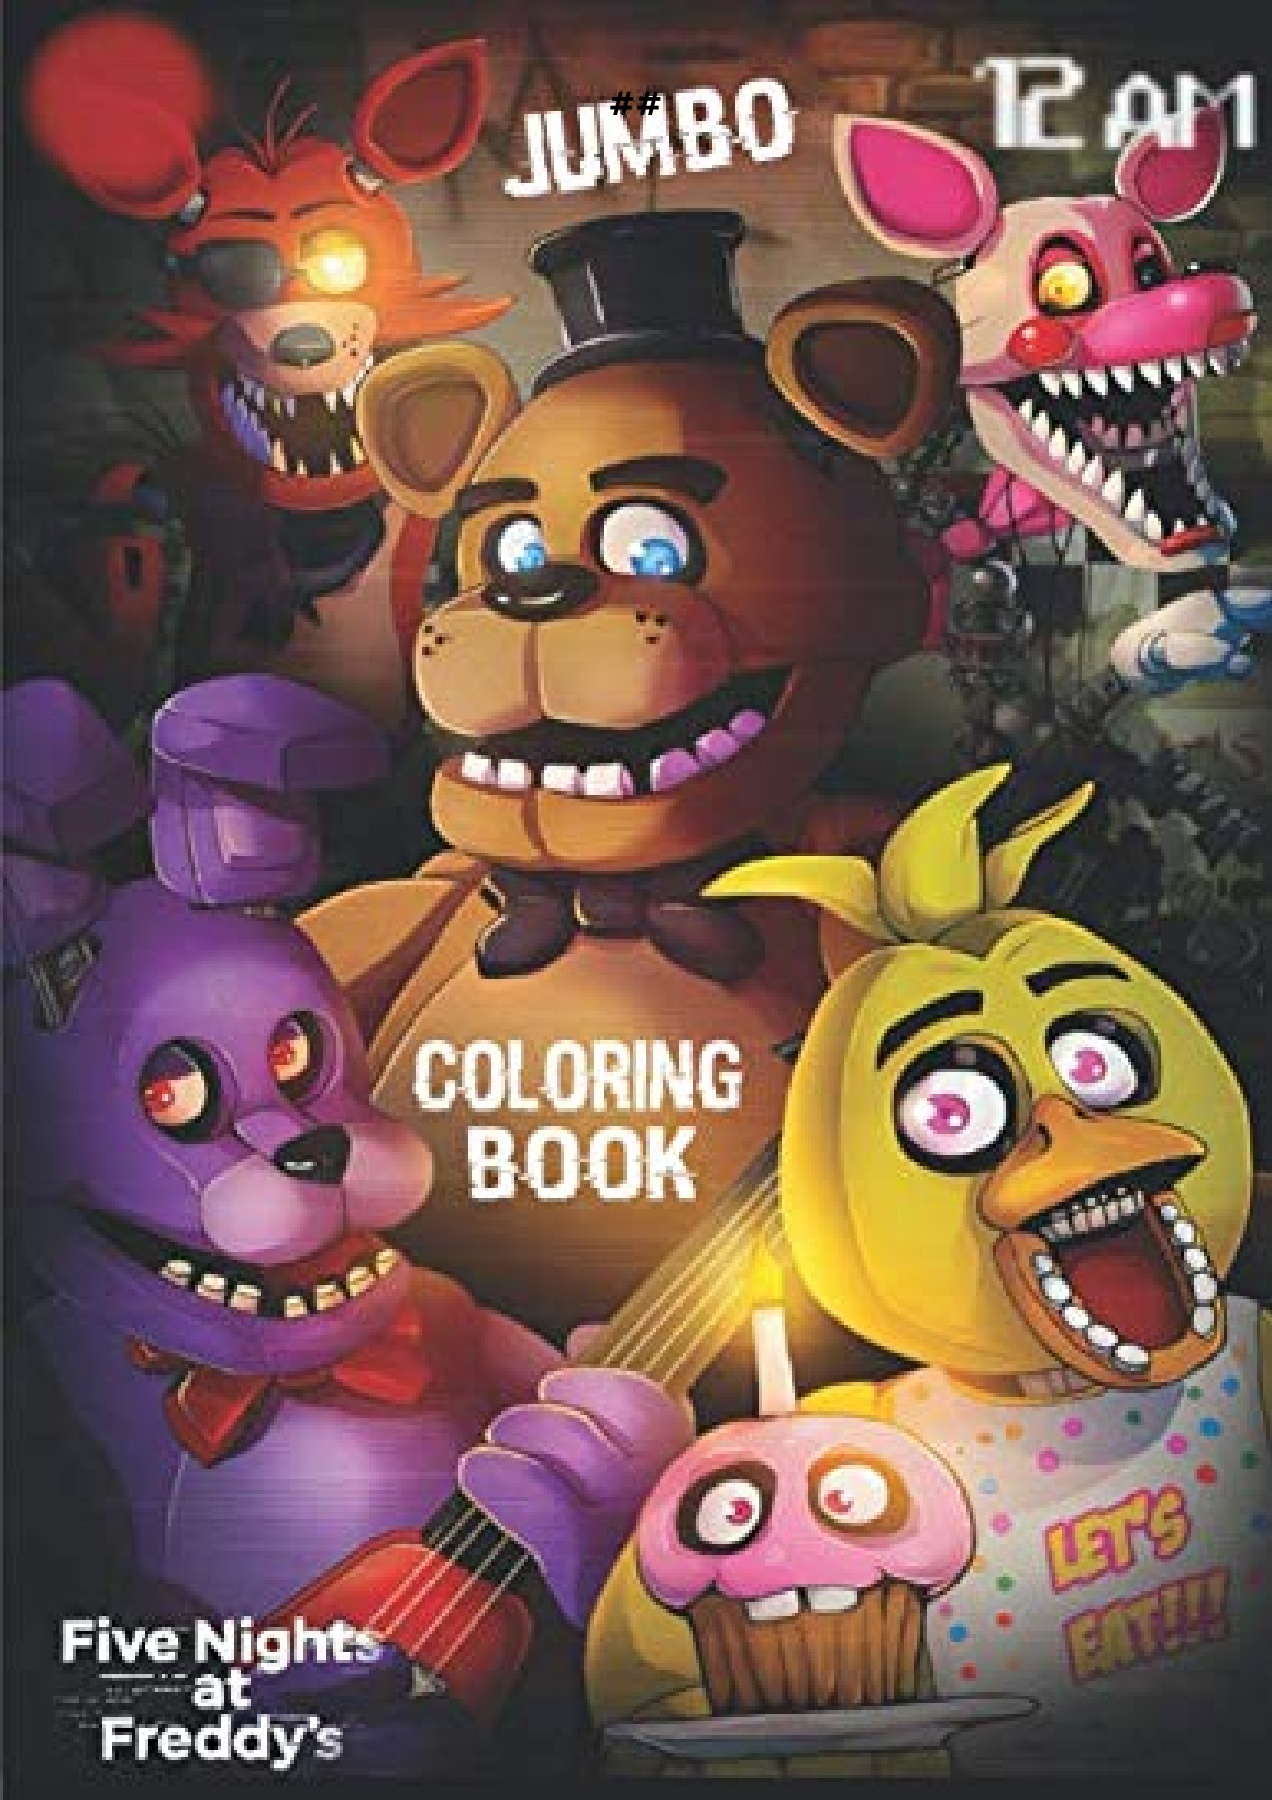 Audiobook Download Five Nights At Freddy S Jumbo Coloring Book High Quality Five Nights At Freddy S Coloring Pages More Than 40 Illustrations For Kids Adults For Android